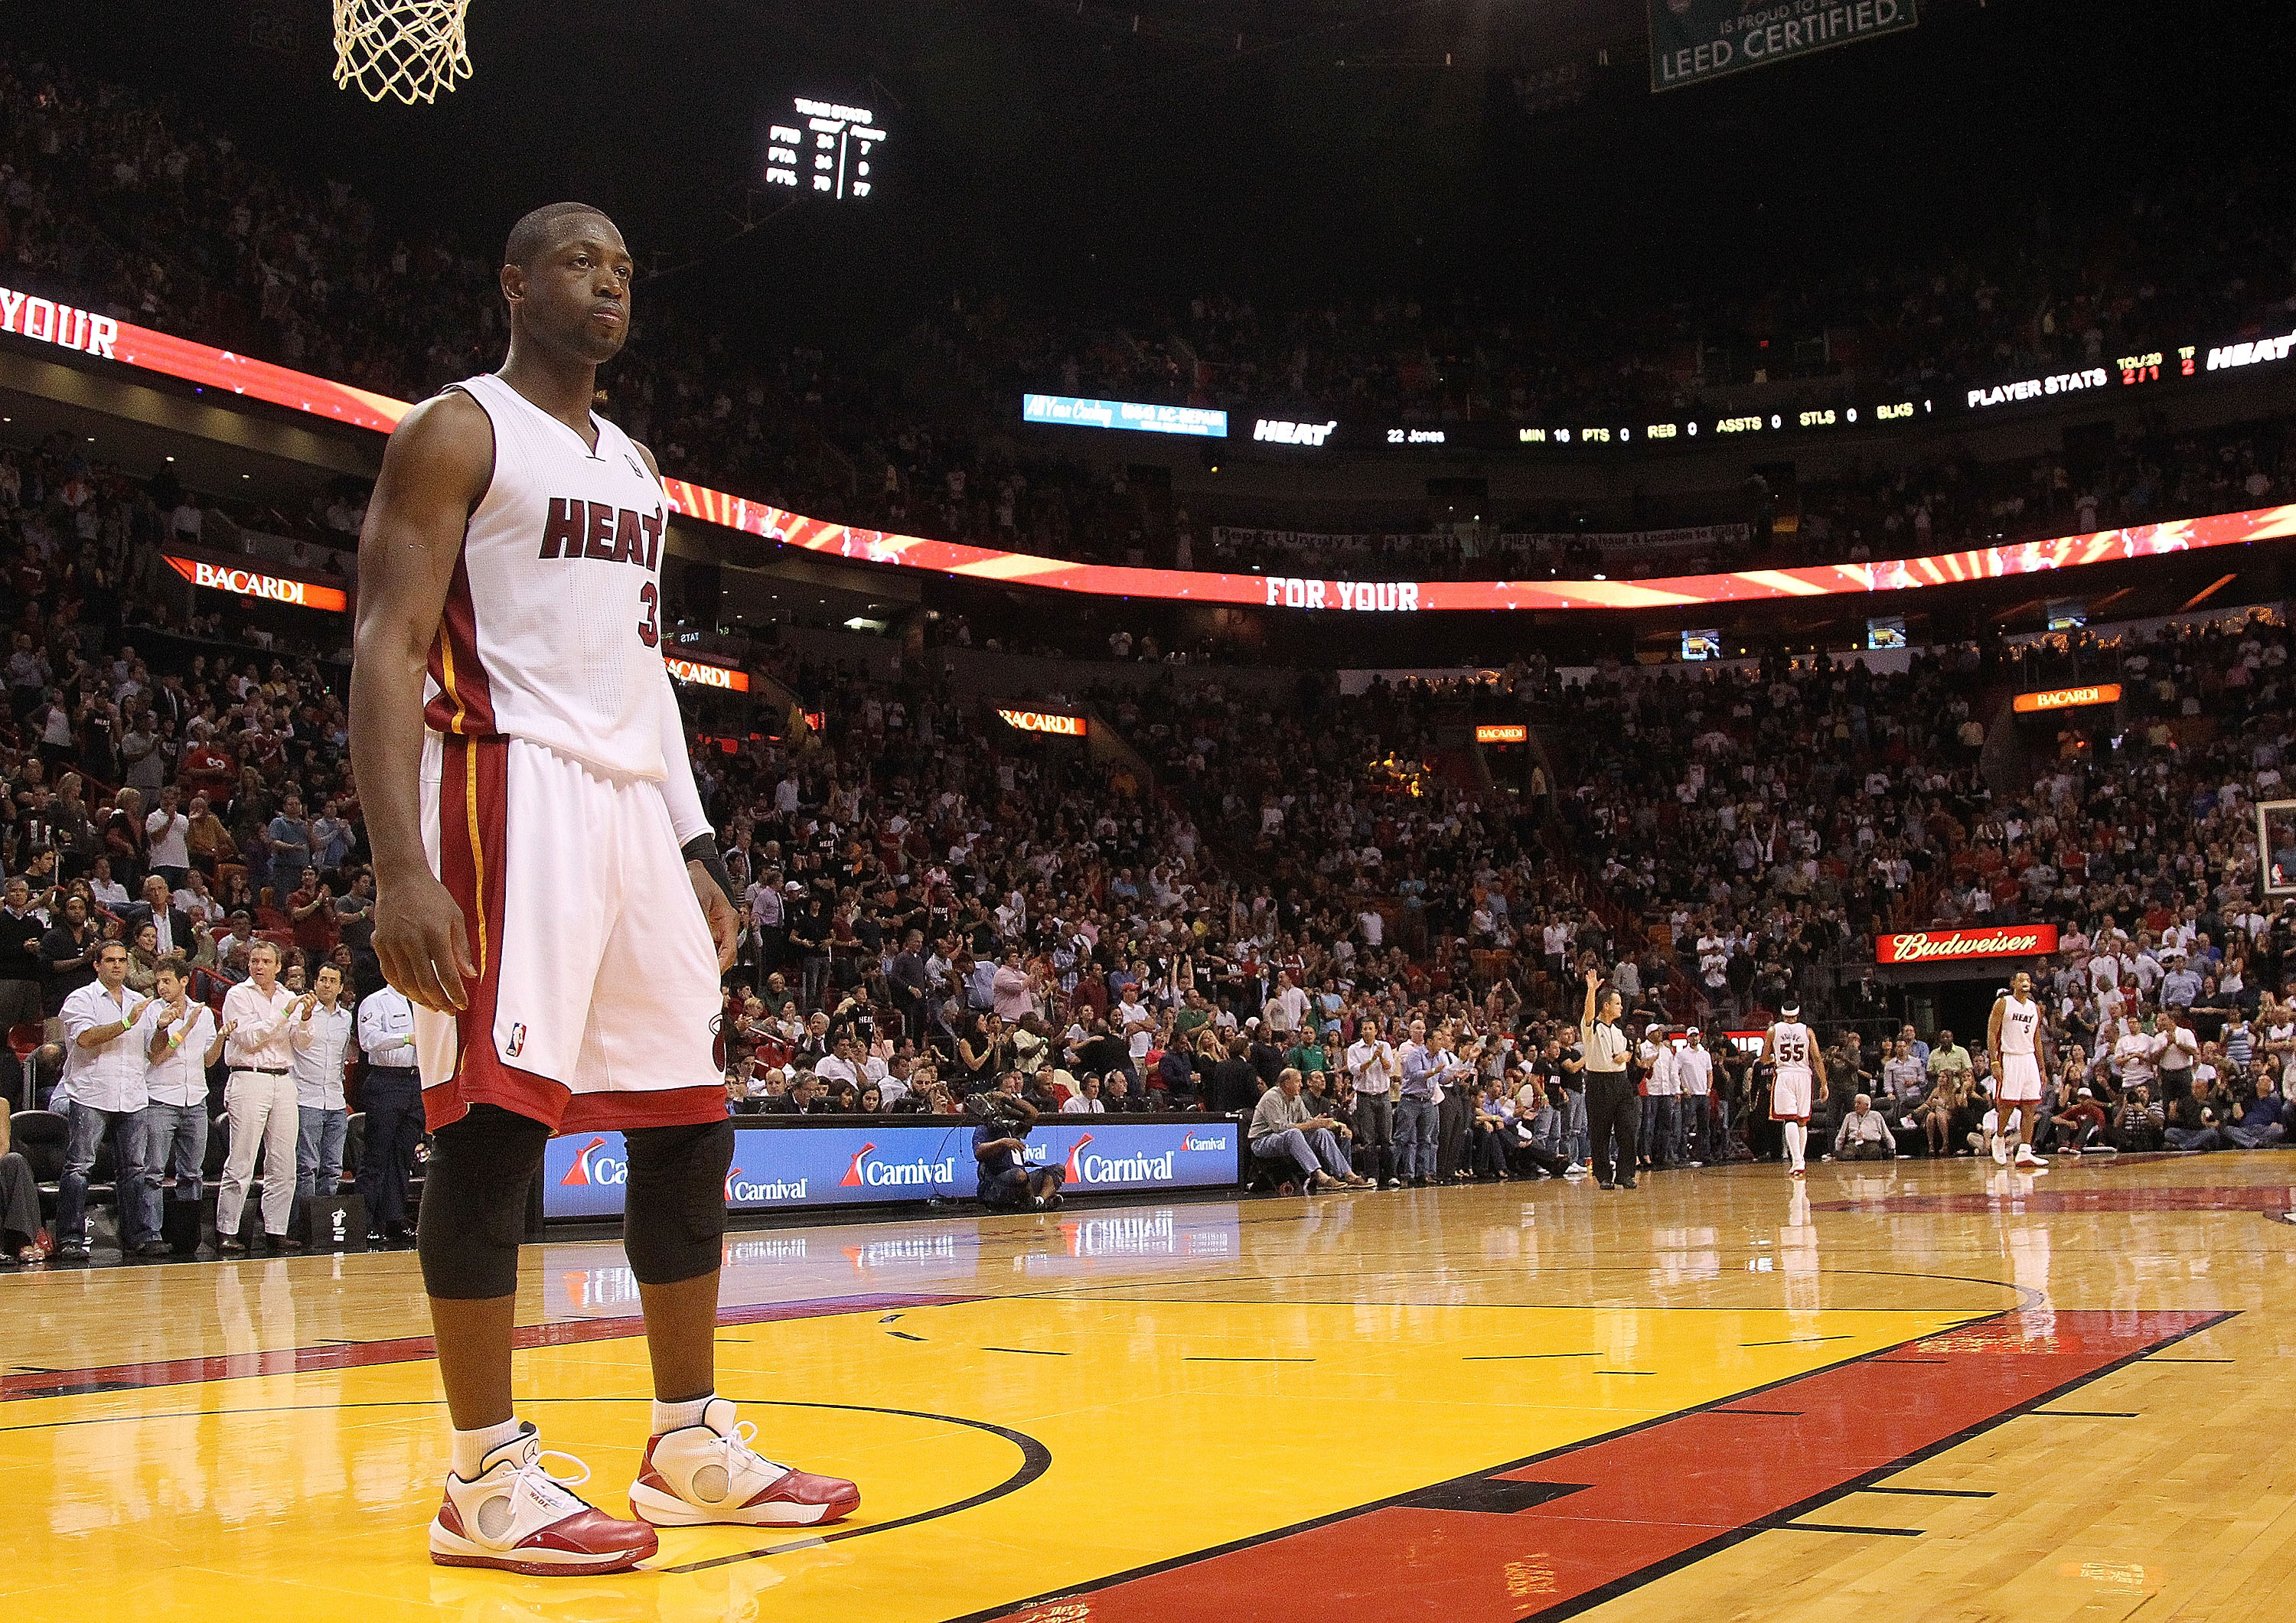 MIAMI - NOVEMBER 22:  Dwyane Wade #3 of the Miami Heat looks on during a game against the Indiana Pacers at American Airlines Arena on November 22, 2010 in Miami, Florida. NOTE TO USER: User expressly acknowledges and agrees that, by downloading and/or us